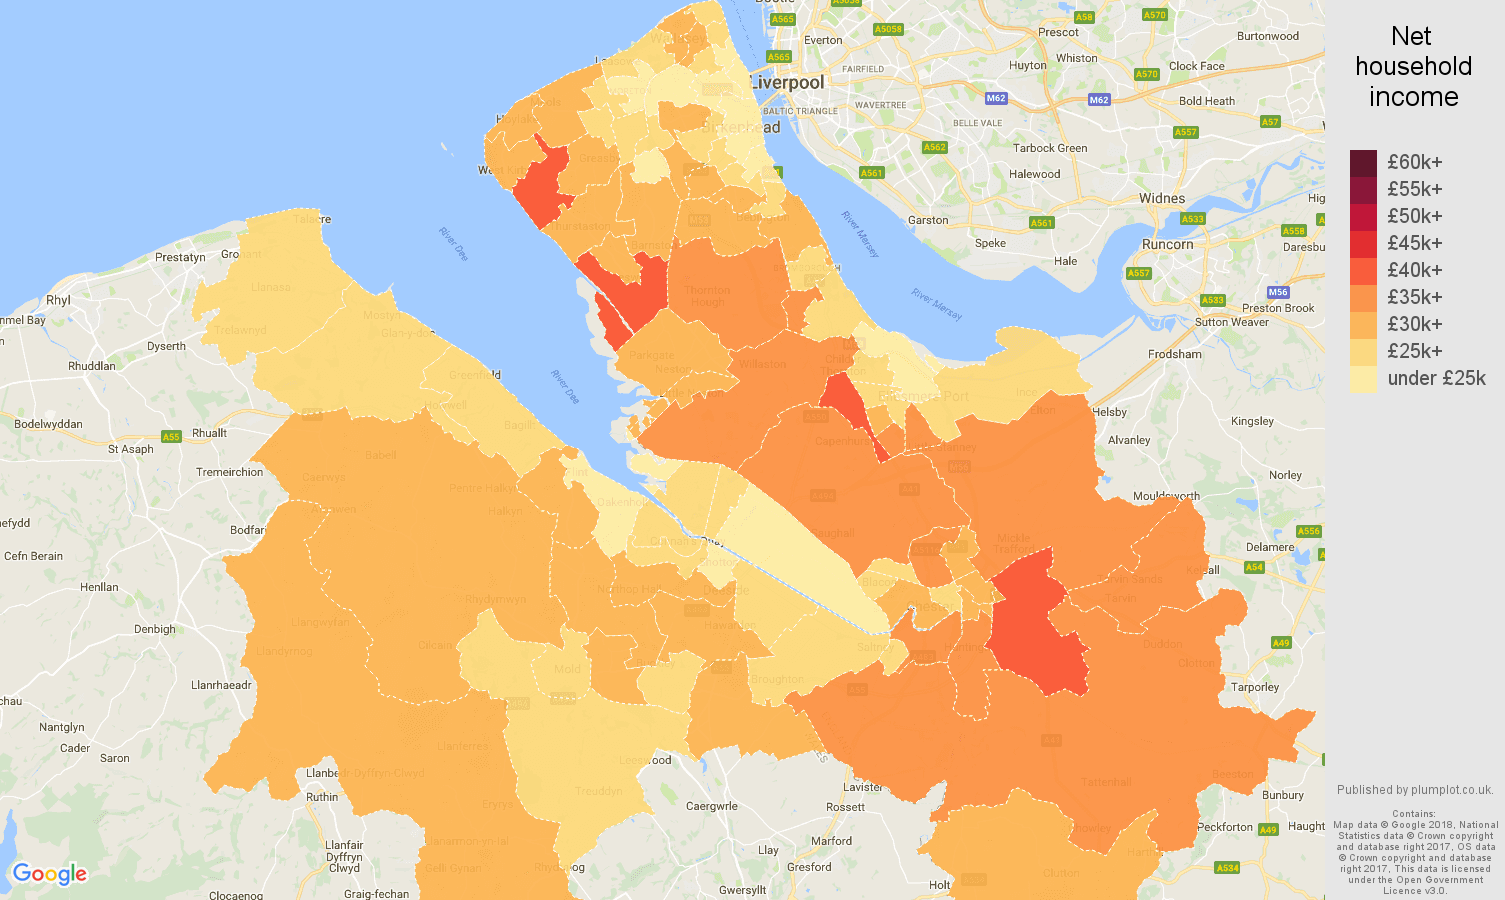 Chester net household income map